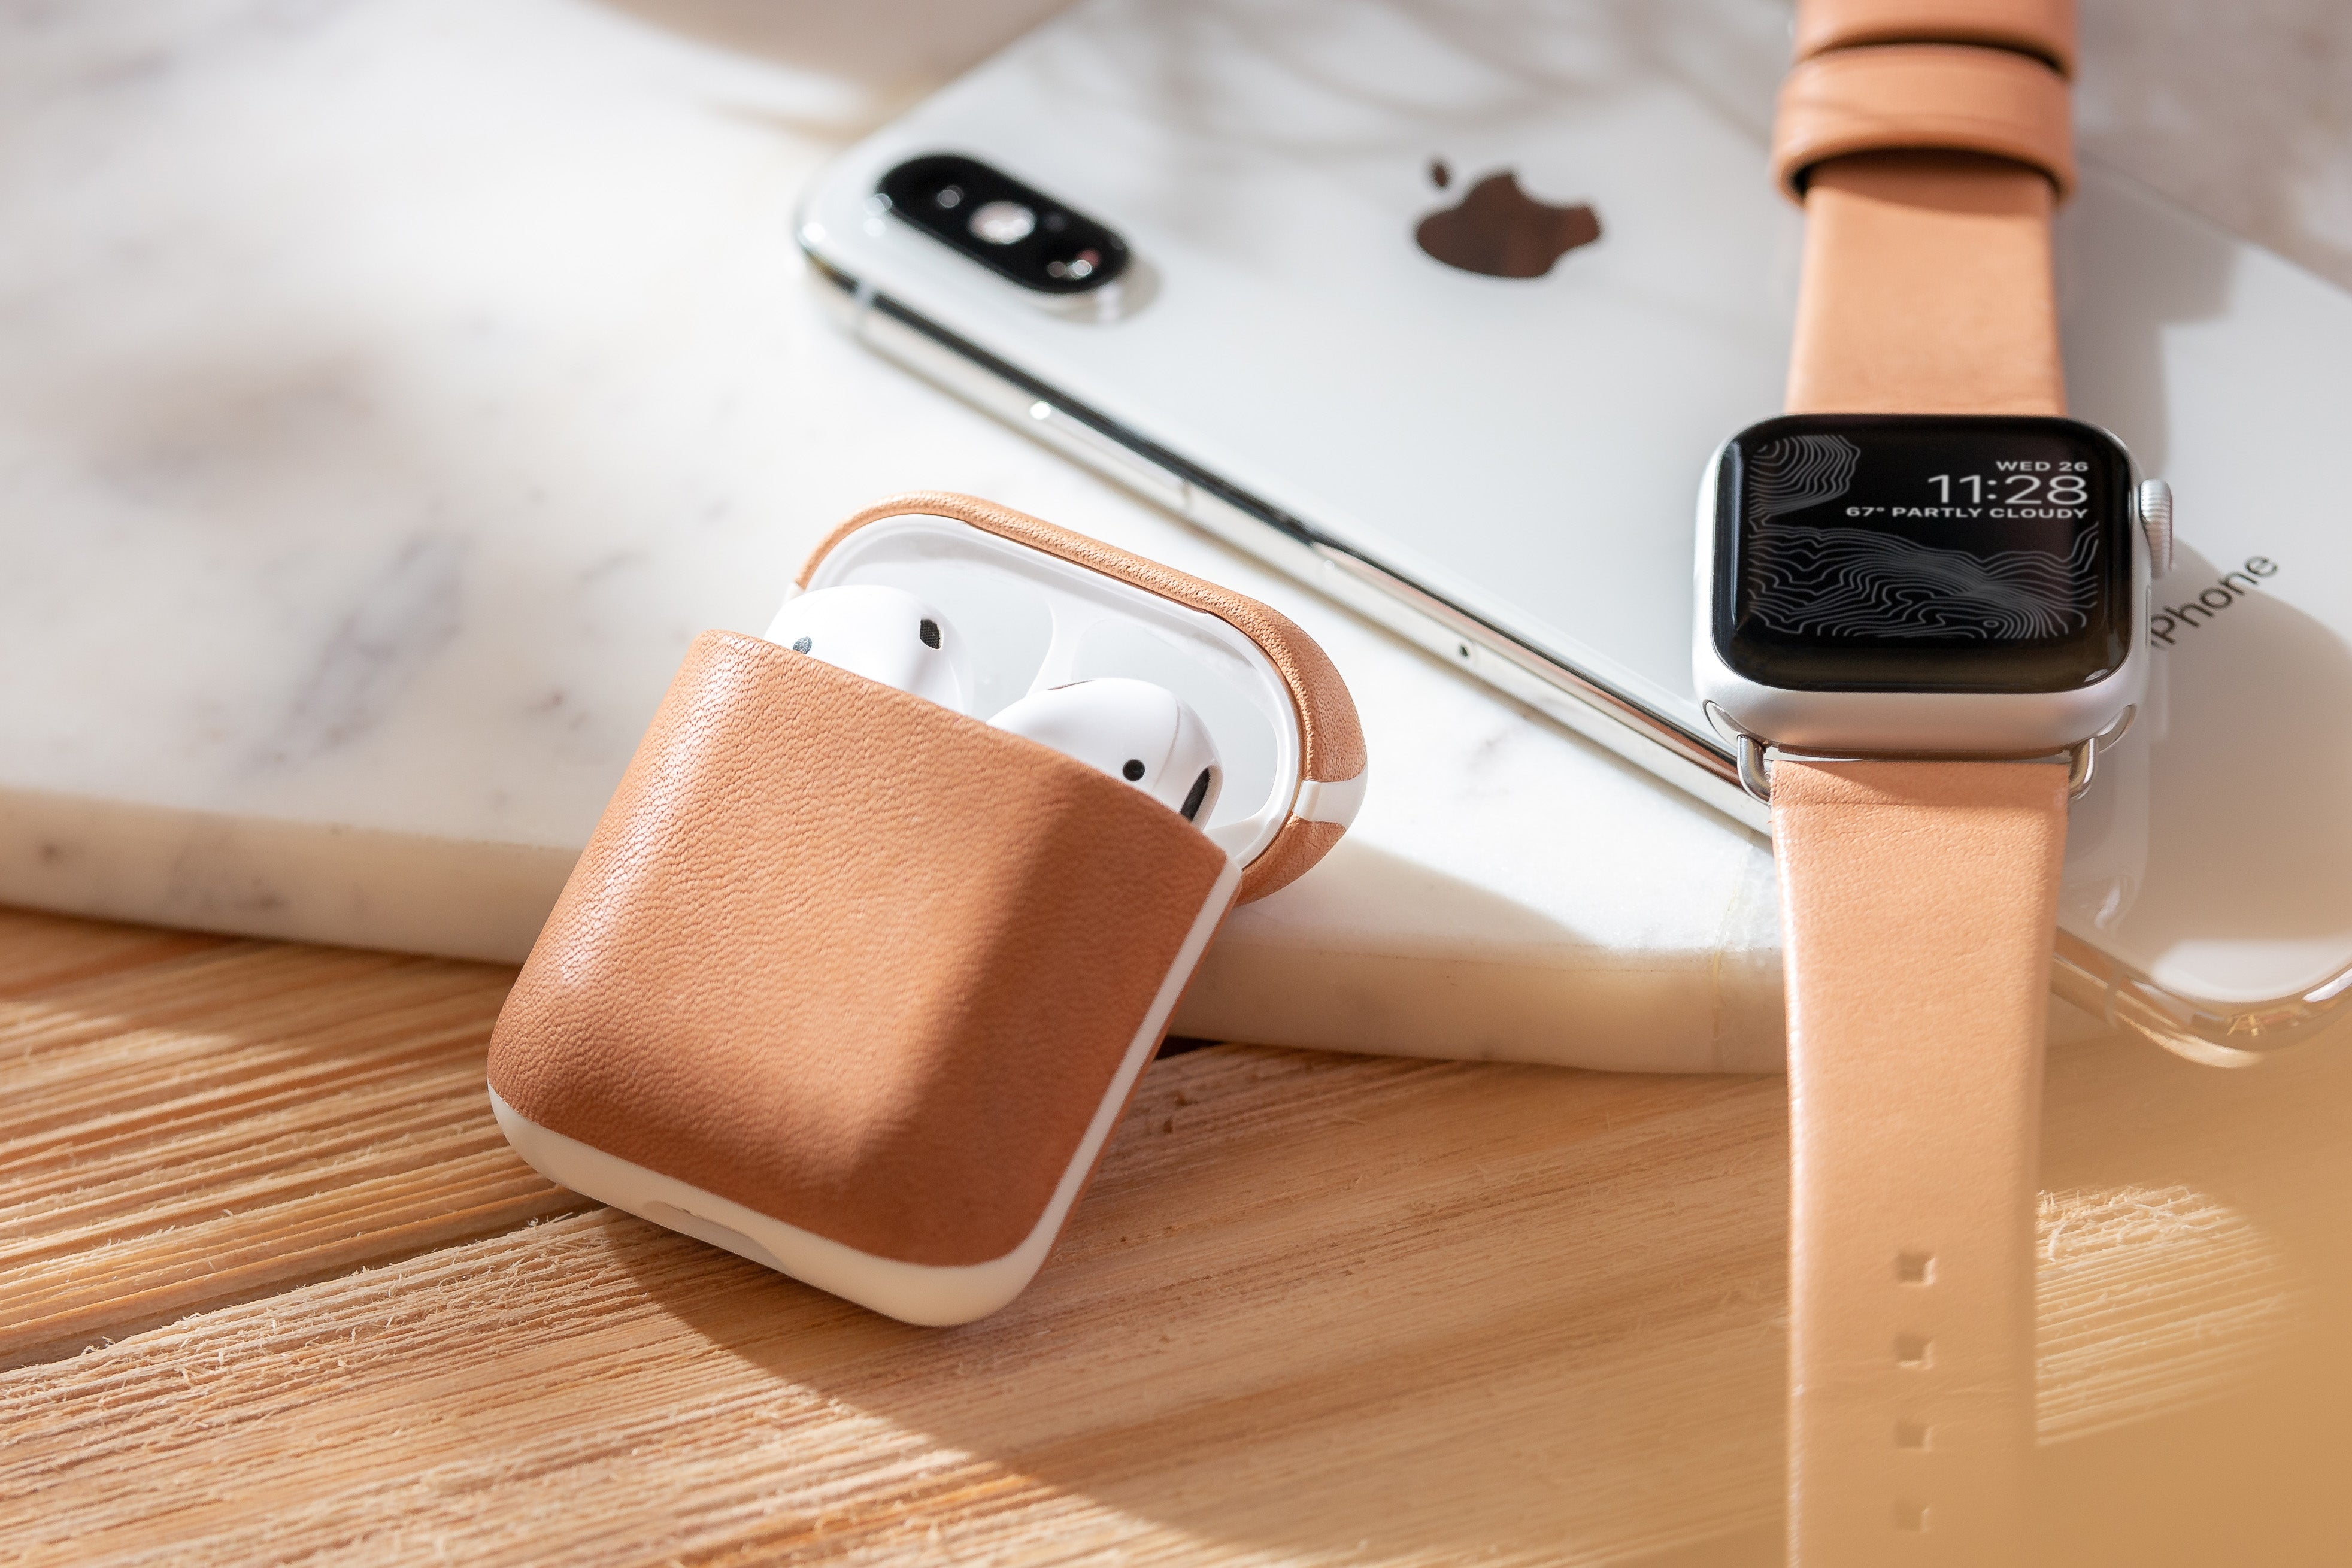 Open Rugged Case in Natural Nude for Apple Airpods next to an Apple Watch and iPhone